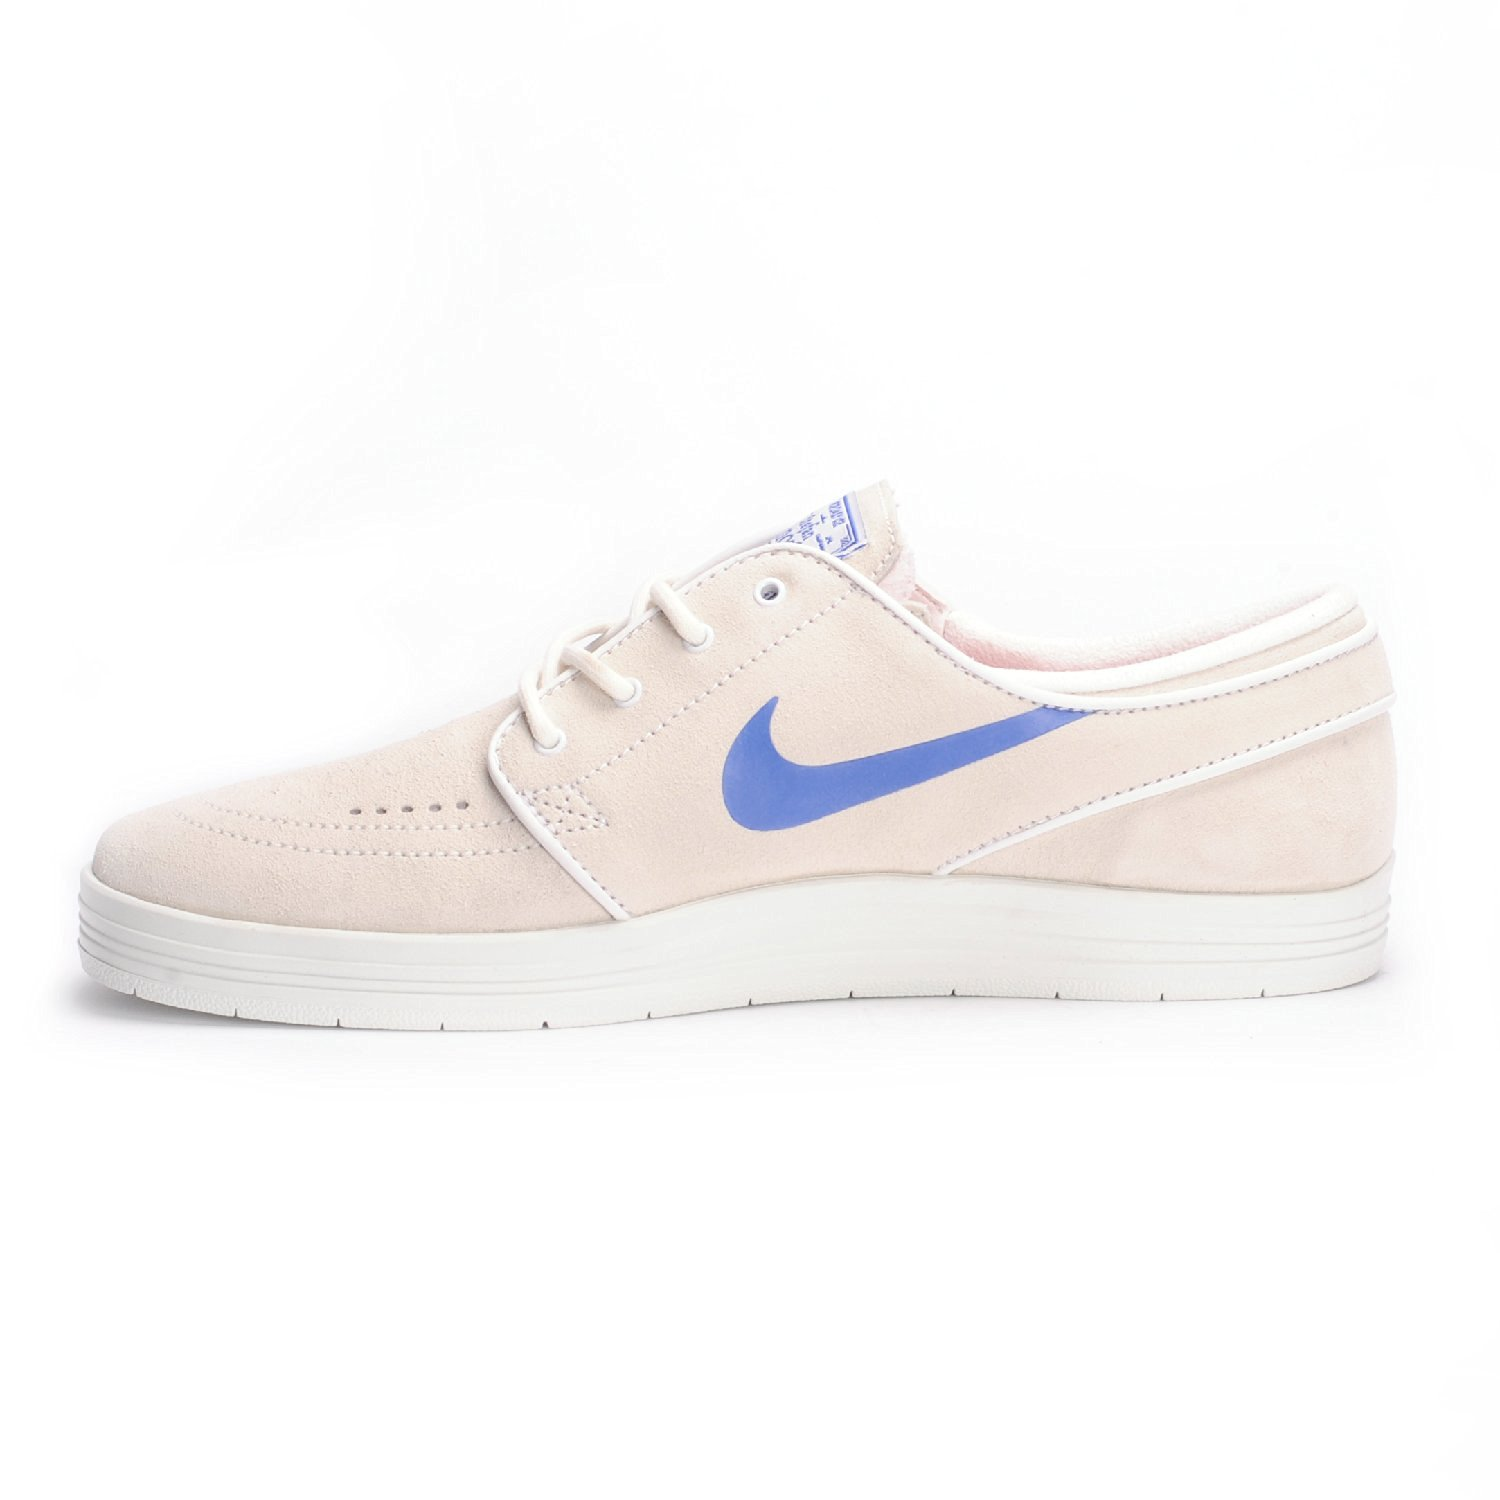 Nike Men's Lunar Stefan Janoski Skateboarding Shoes Summi...